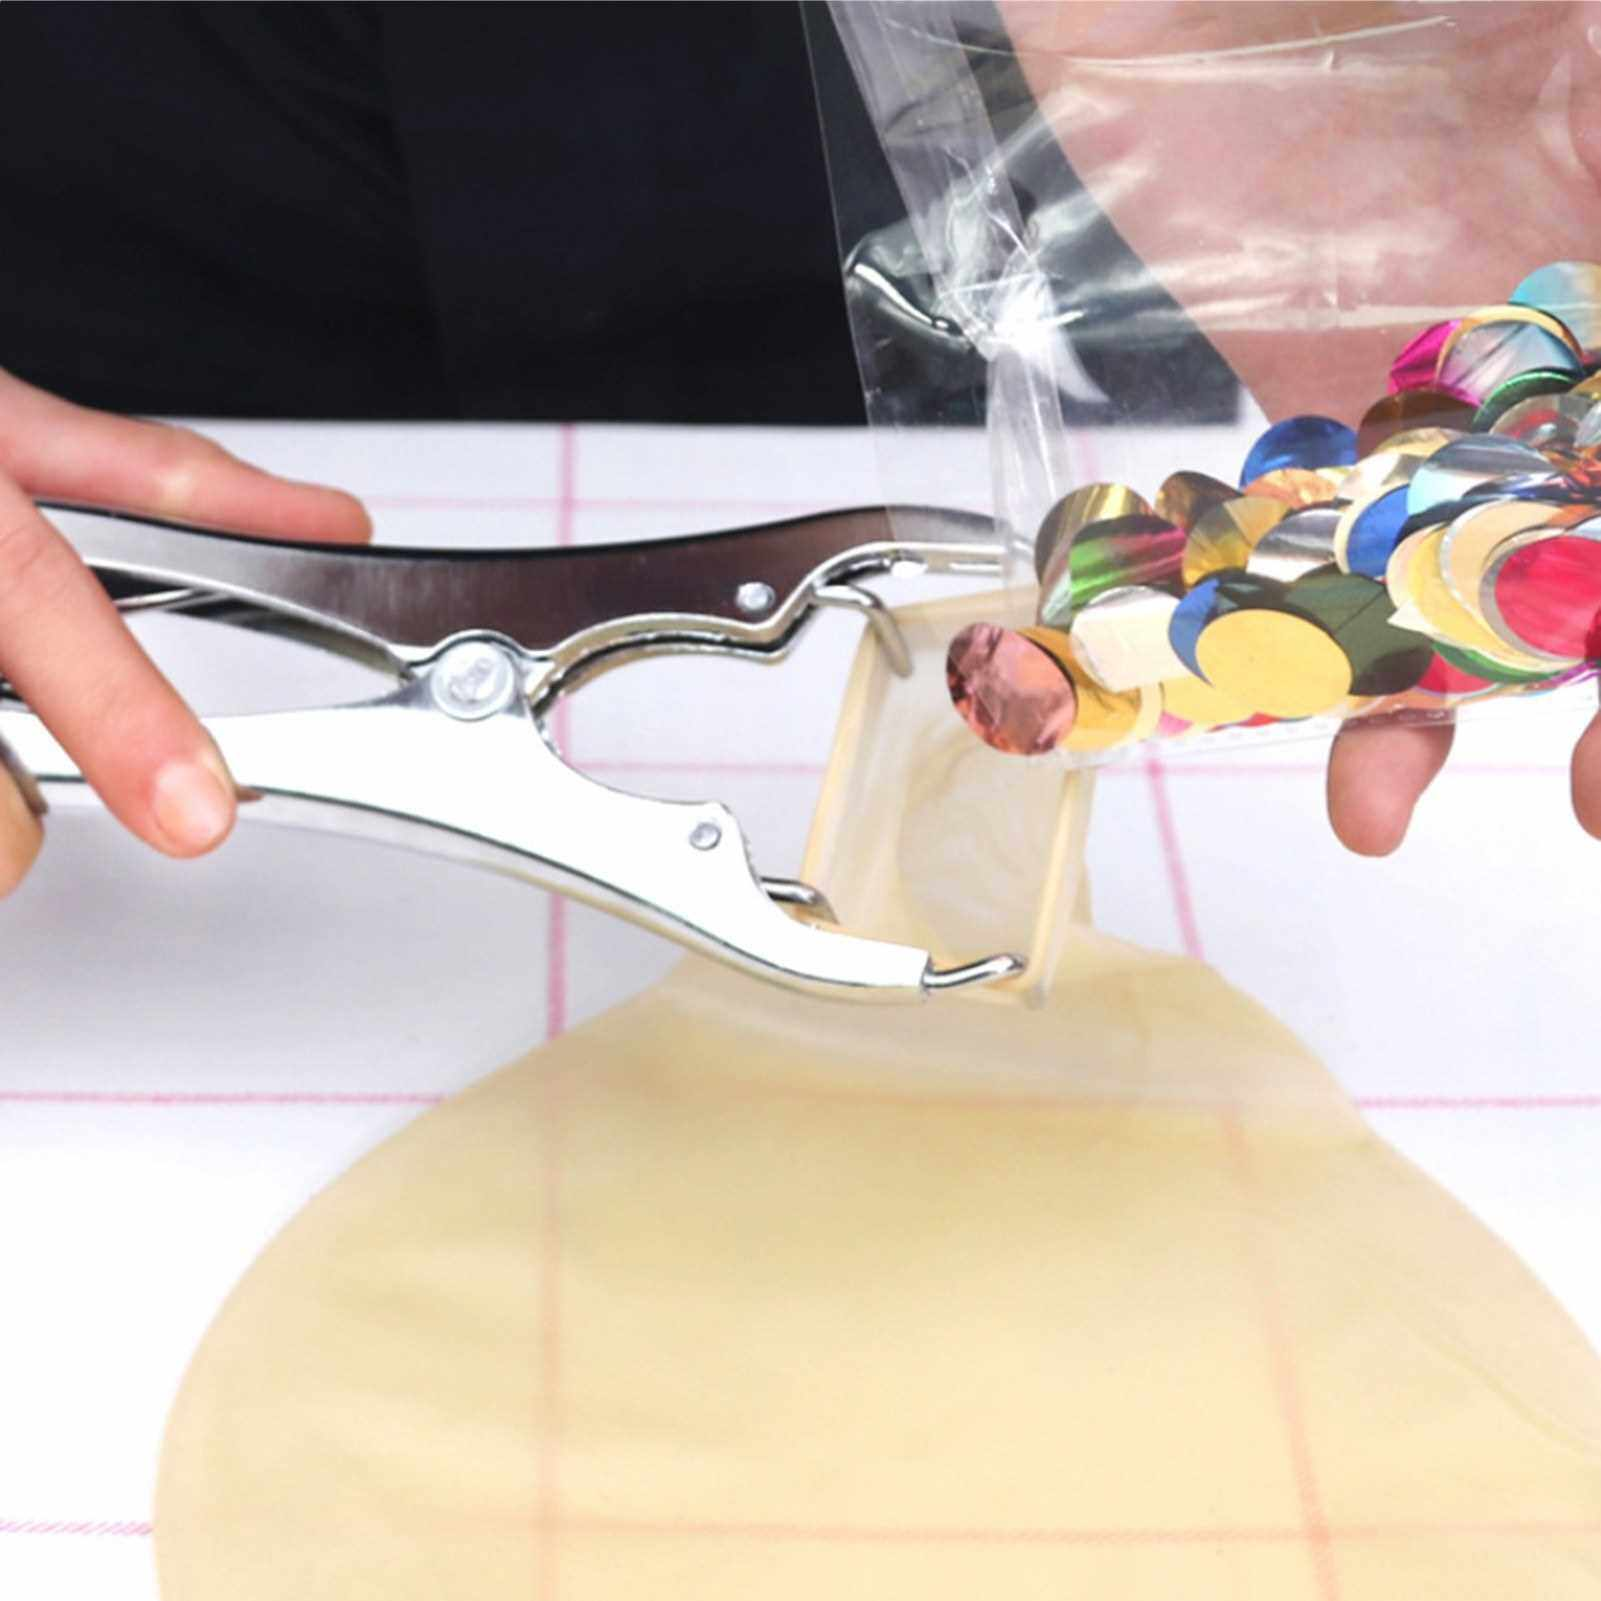 Stainless Steel Balloon Expansion Pliers Balloon Sequins Filling Expand Tool (Standard)